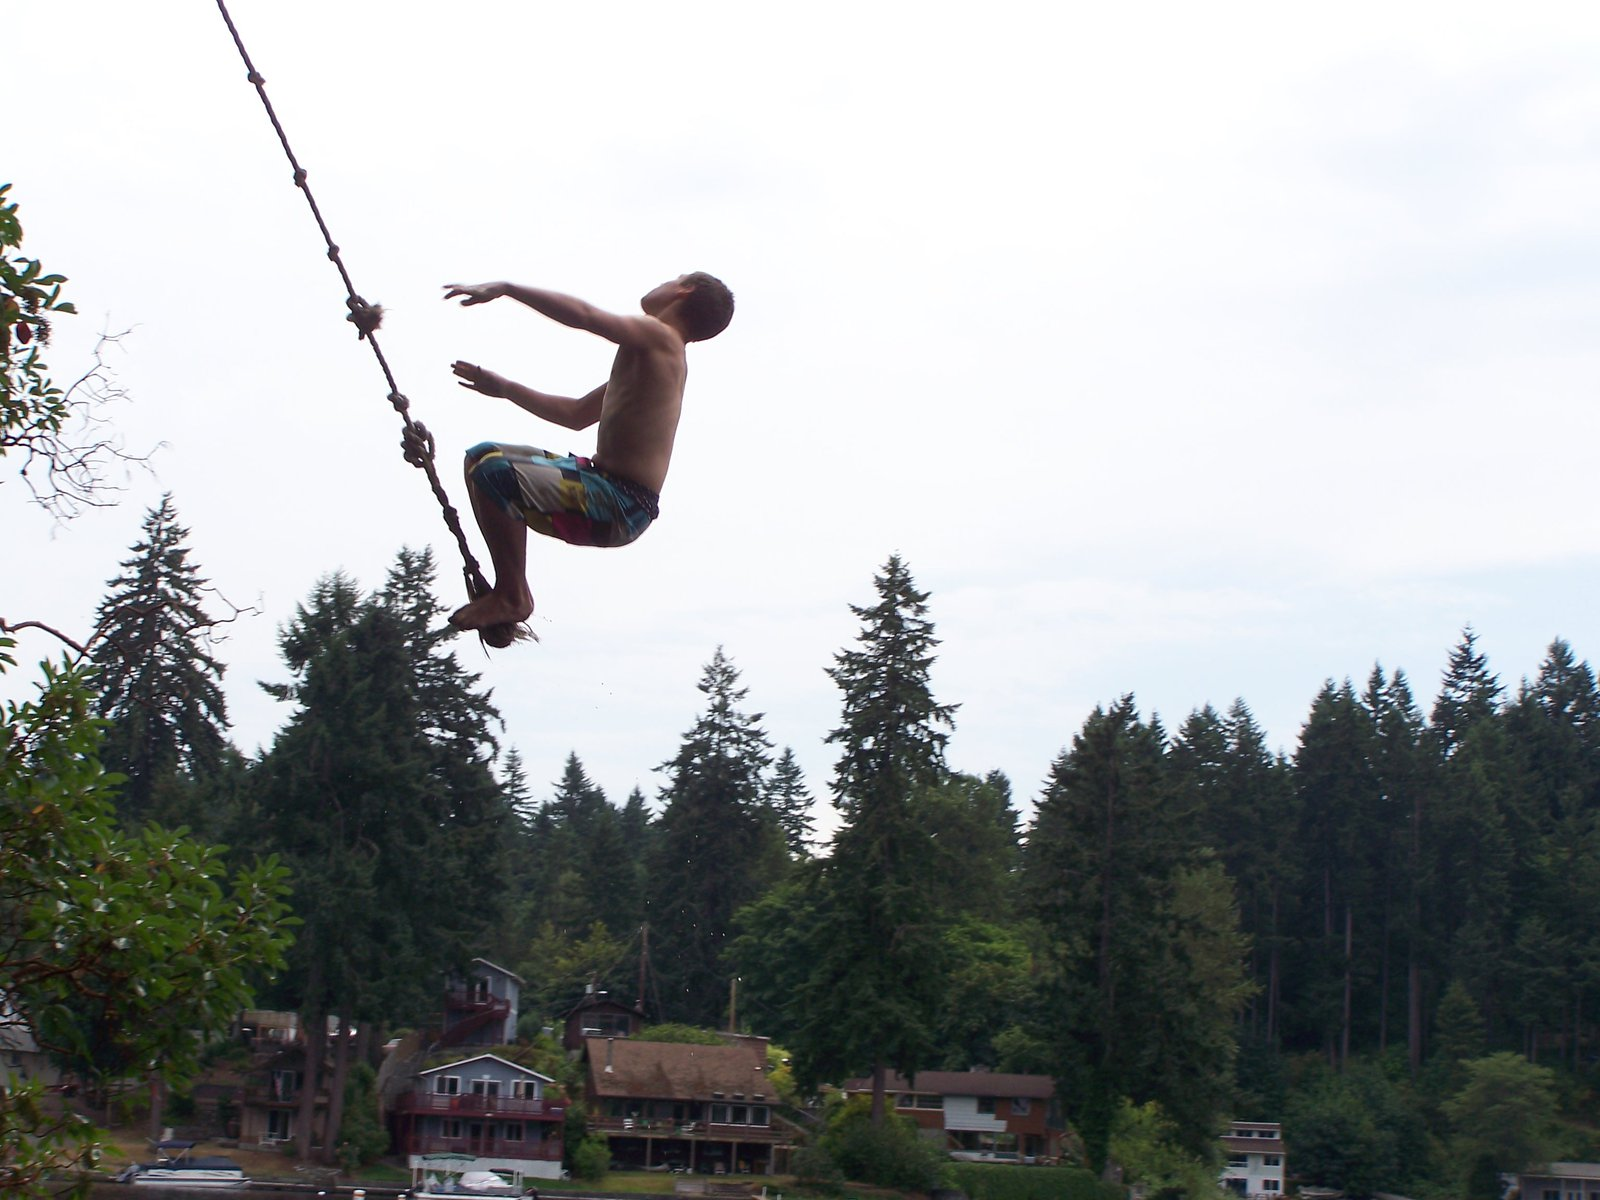 Ropeswing backflips